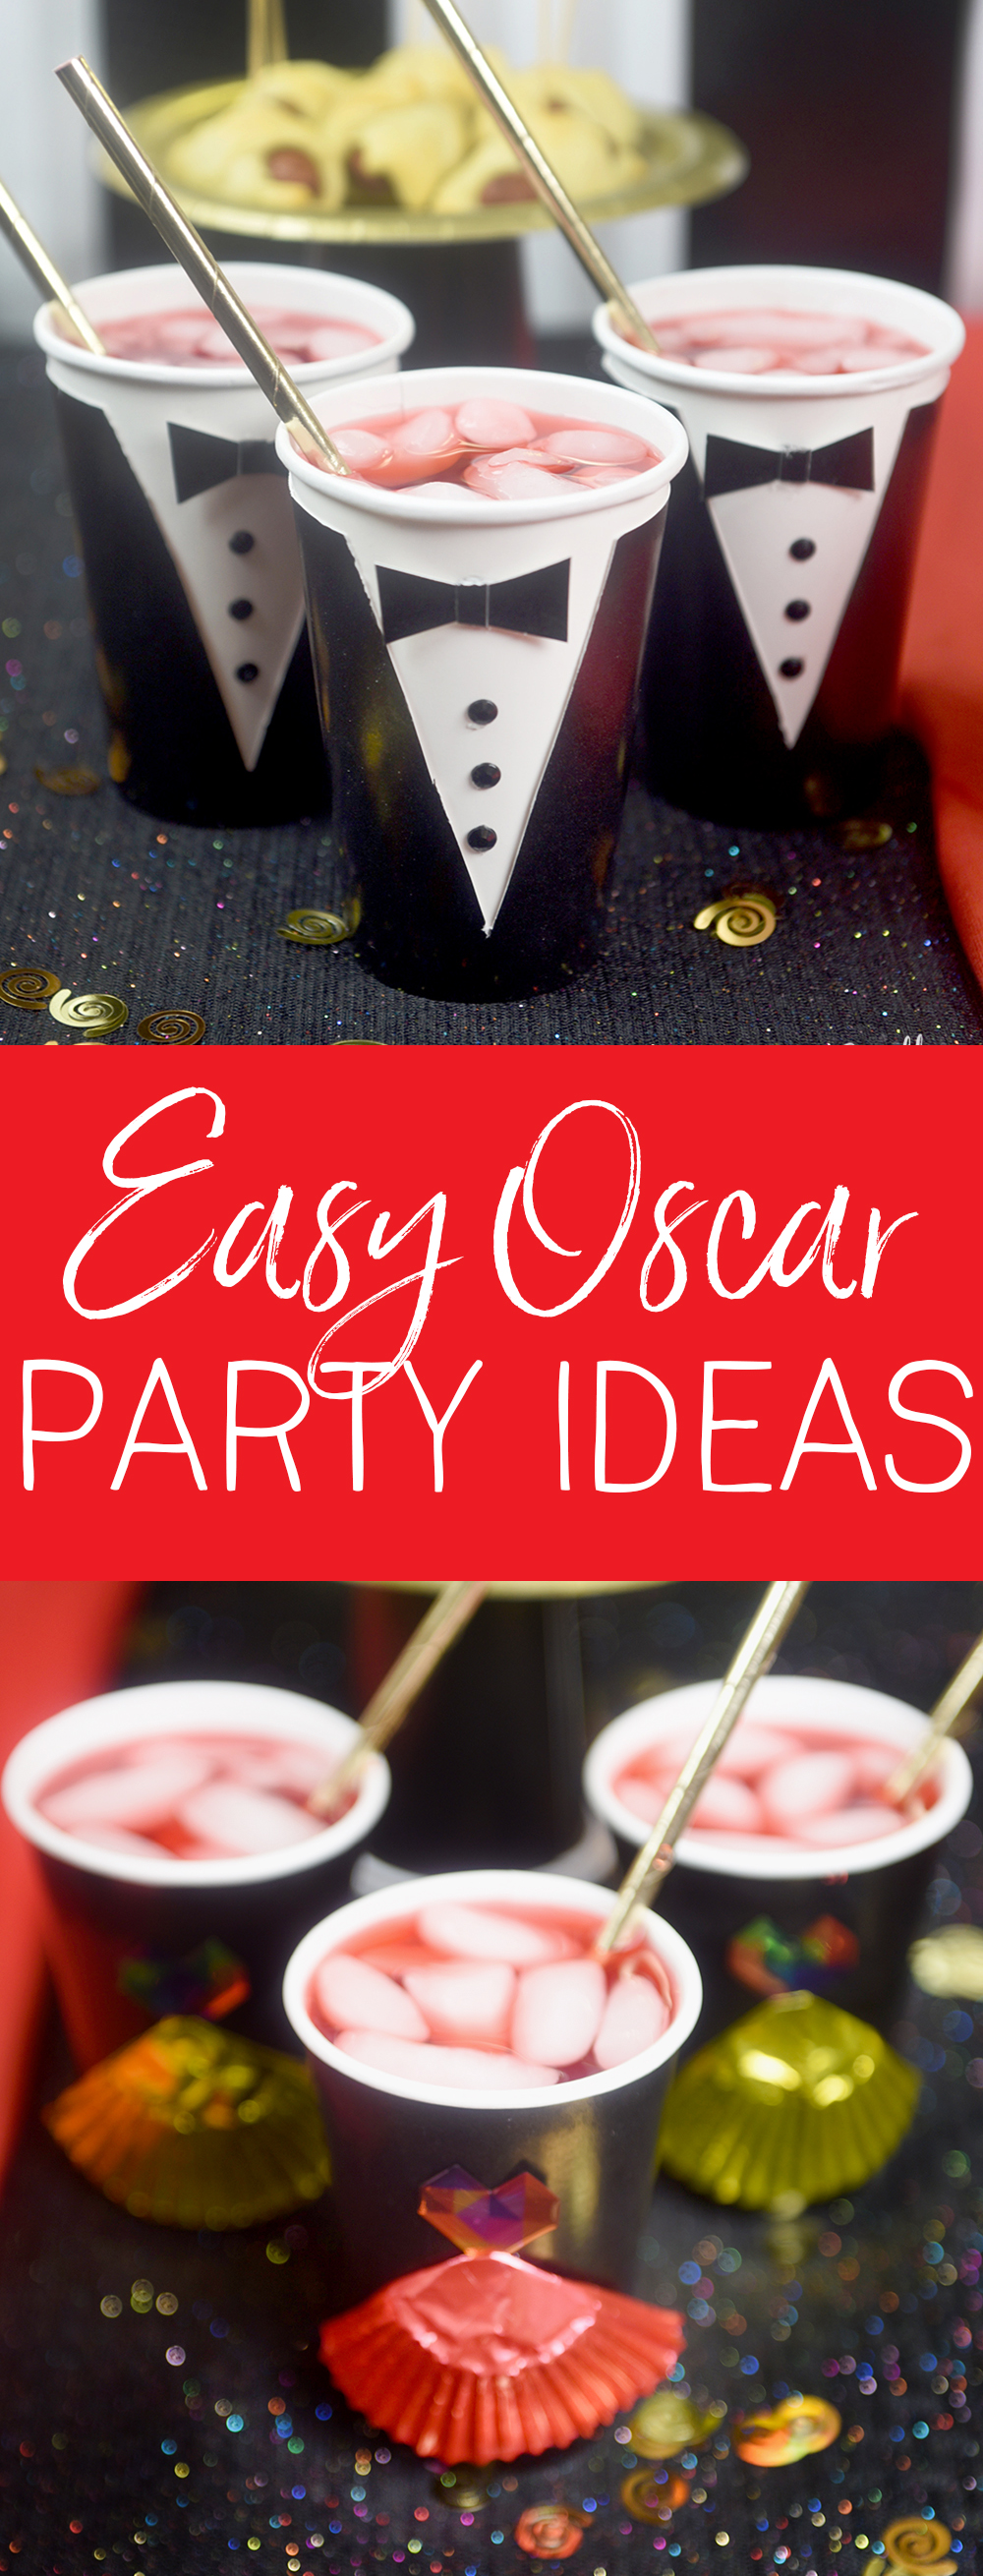 These 5 Easy Oscar Party Ideas are all you need to throw the perfect Oscar Party!